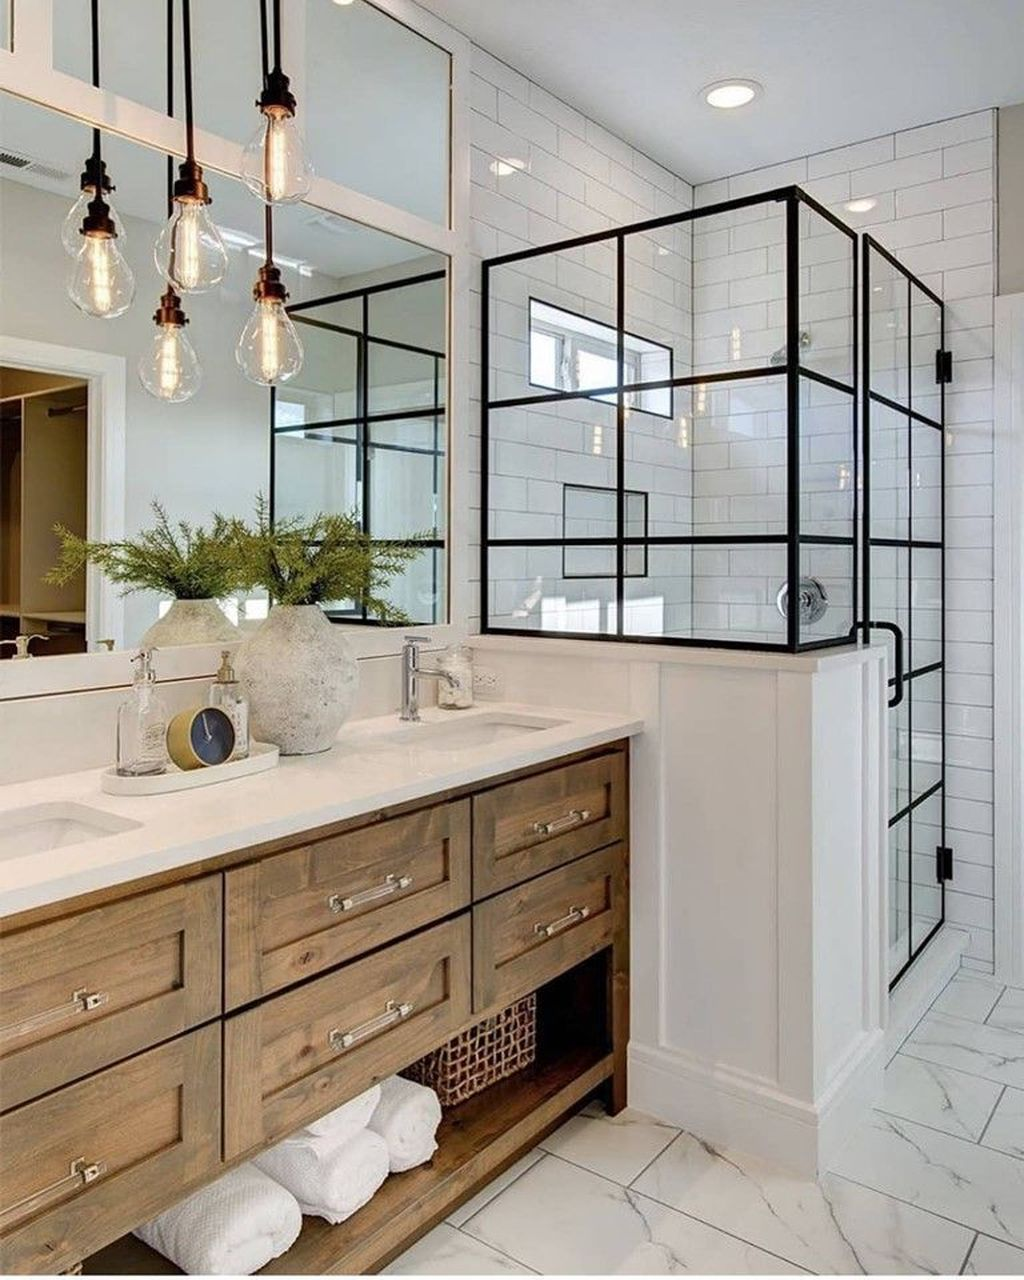 Inspiring Unique Bathroom Ideas That You Should Try 04